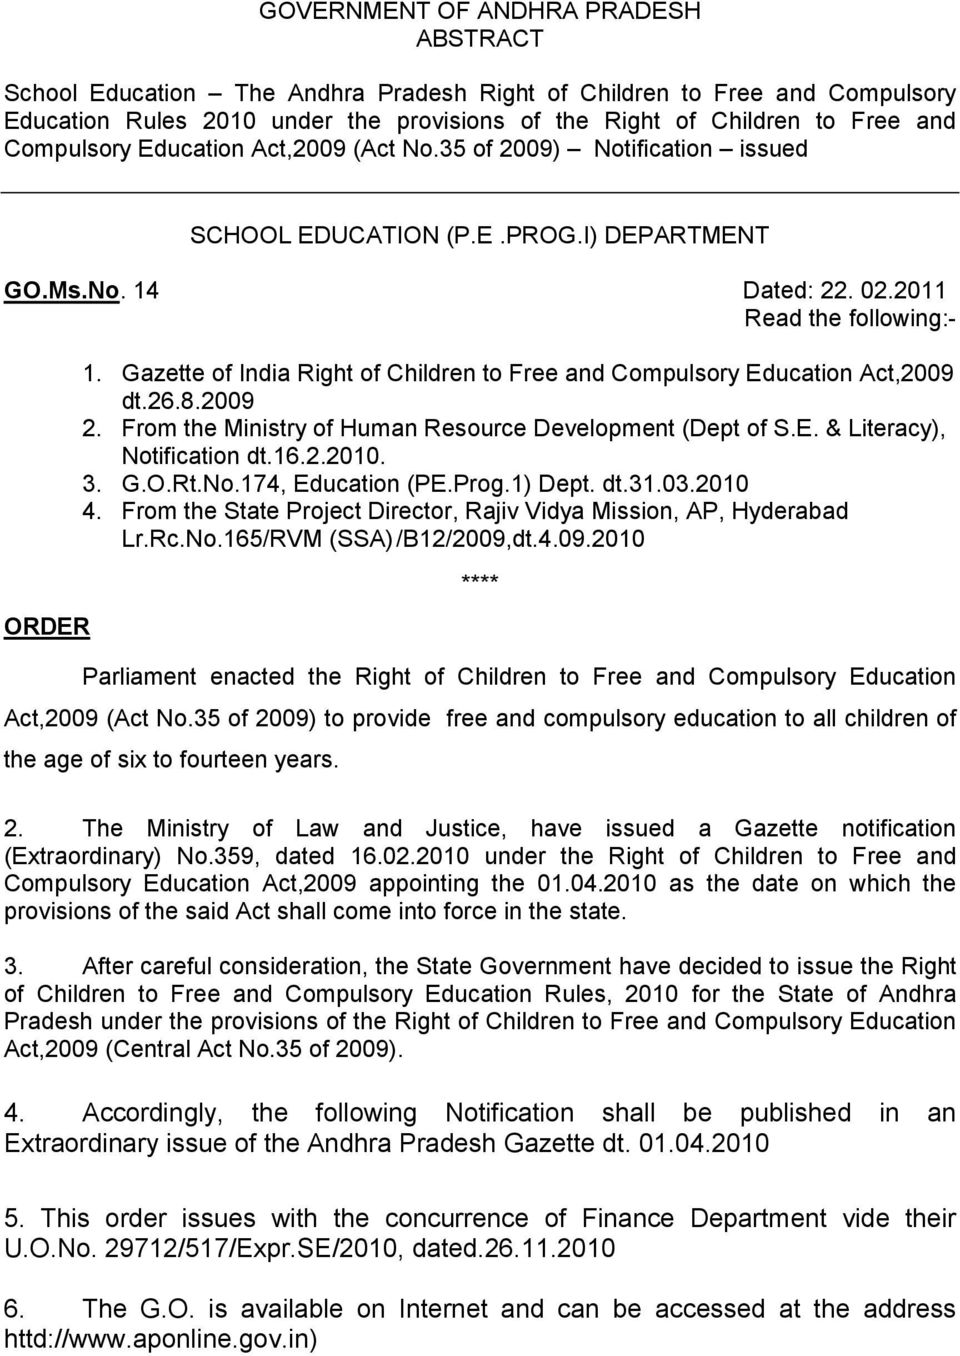 Gazette of India Right of Children to Free and Compulsory Education Act,2009 dt.26.8.2009 2. From the Ministry of Human Resource Development (Dept of S.E. & Literacy), Notification dt.16.2.2010. 3. G.